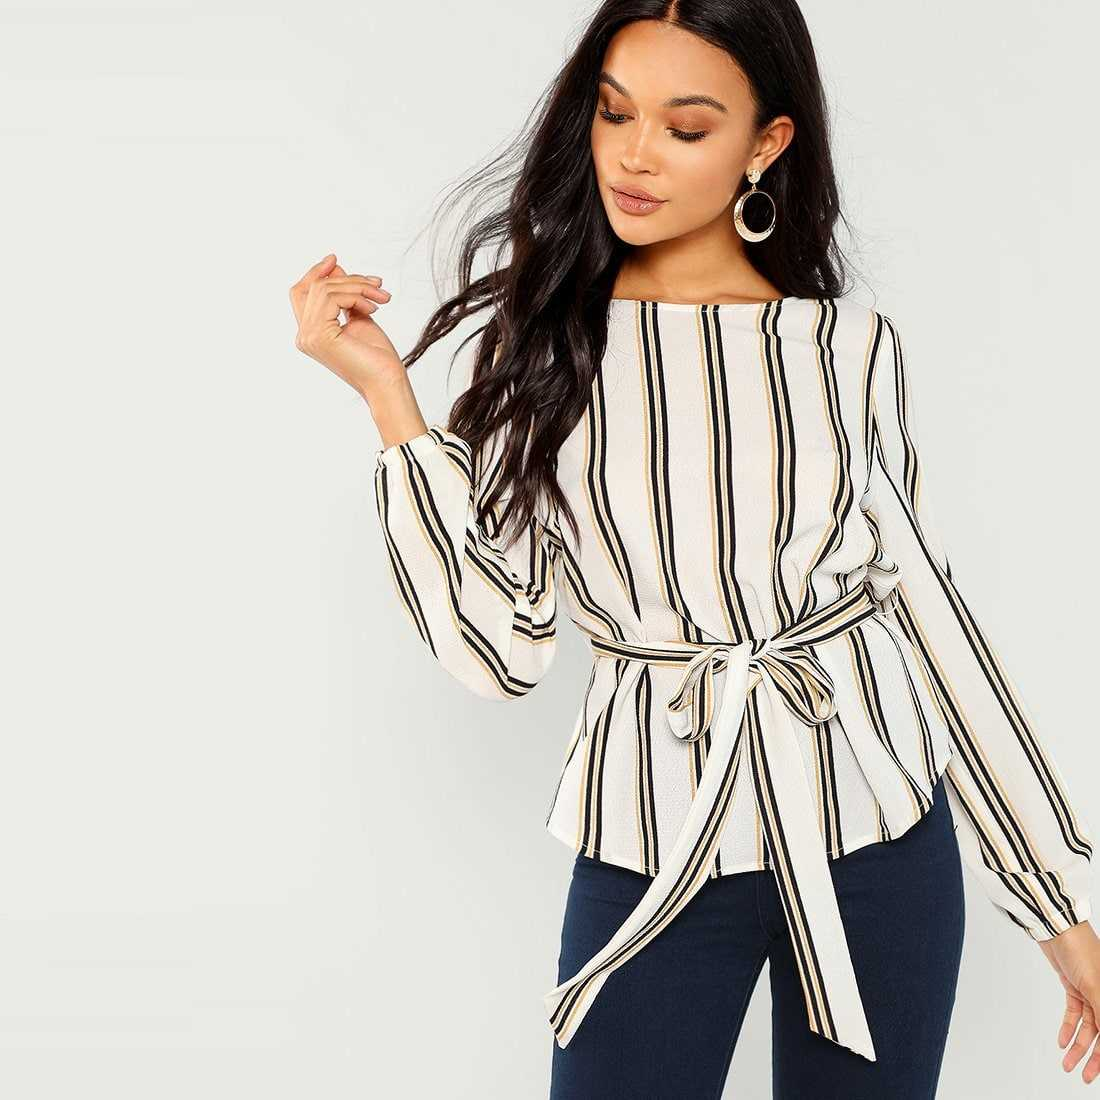 Striped Belted Top in Multicolor by ROMWE on GOOFASH